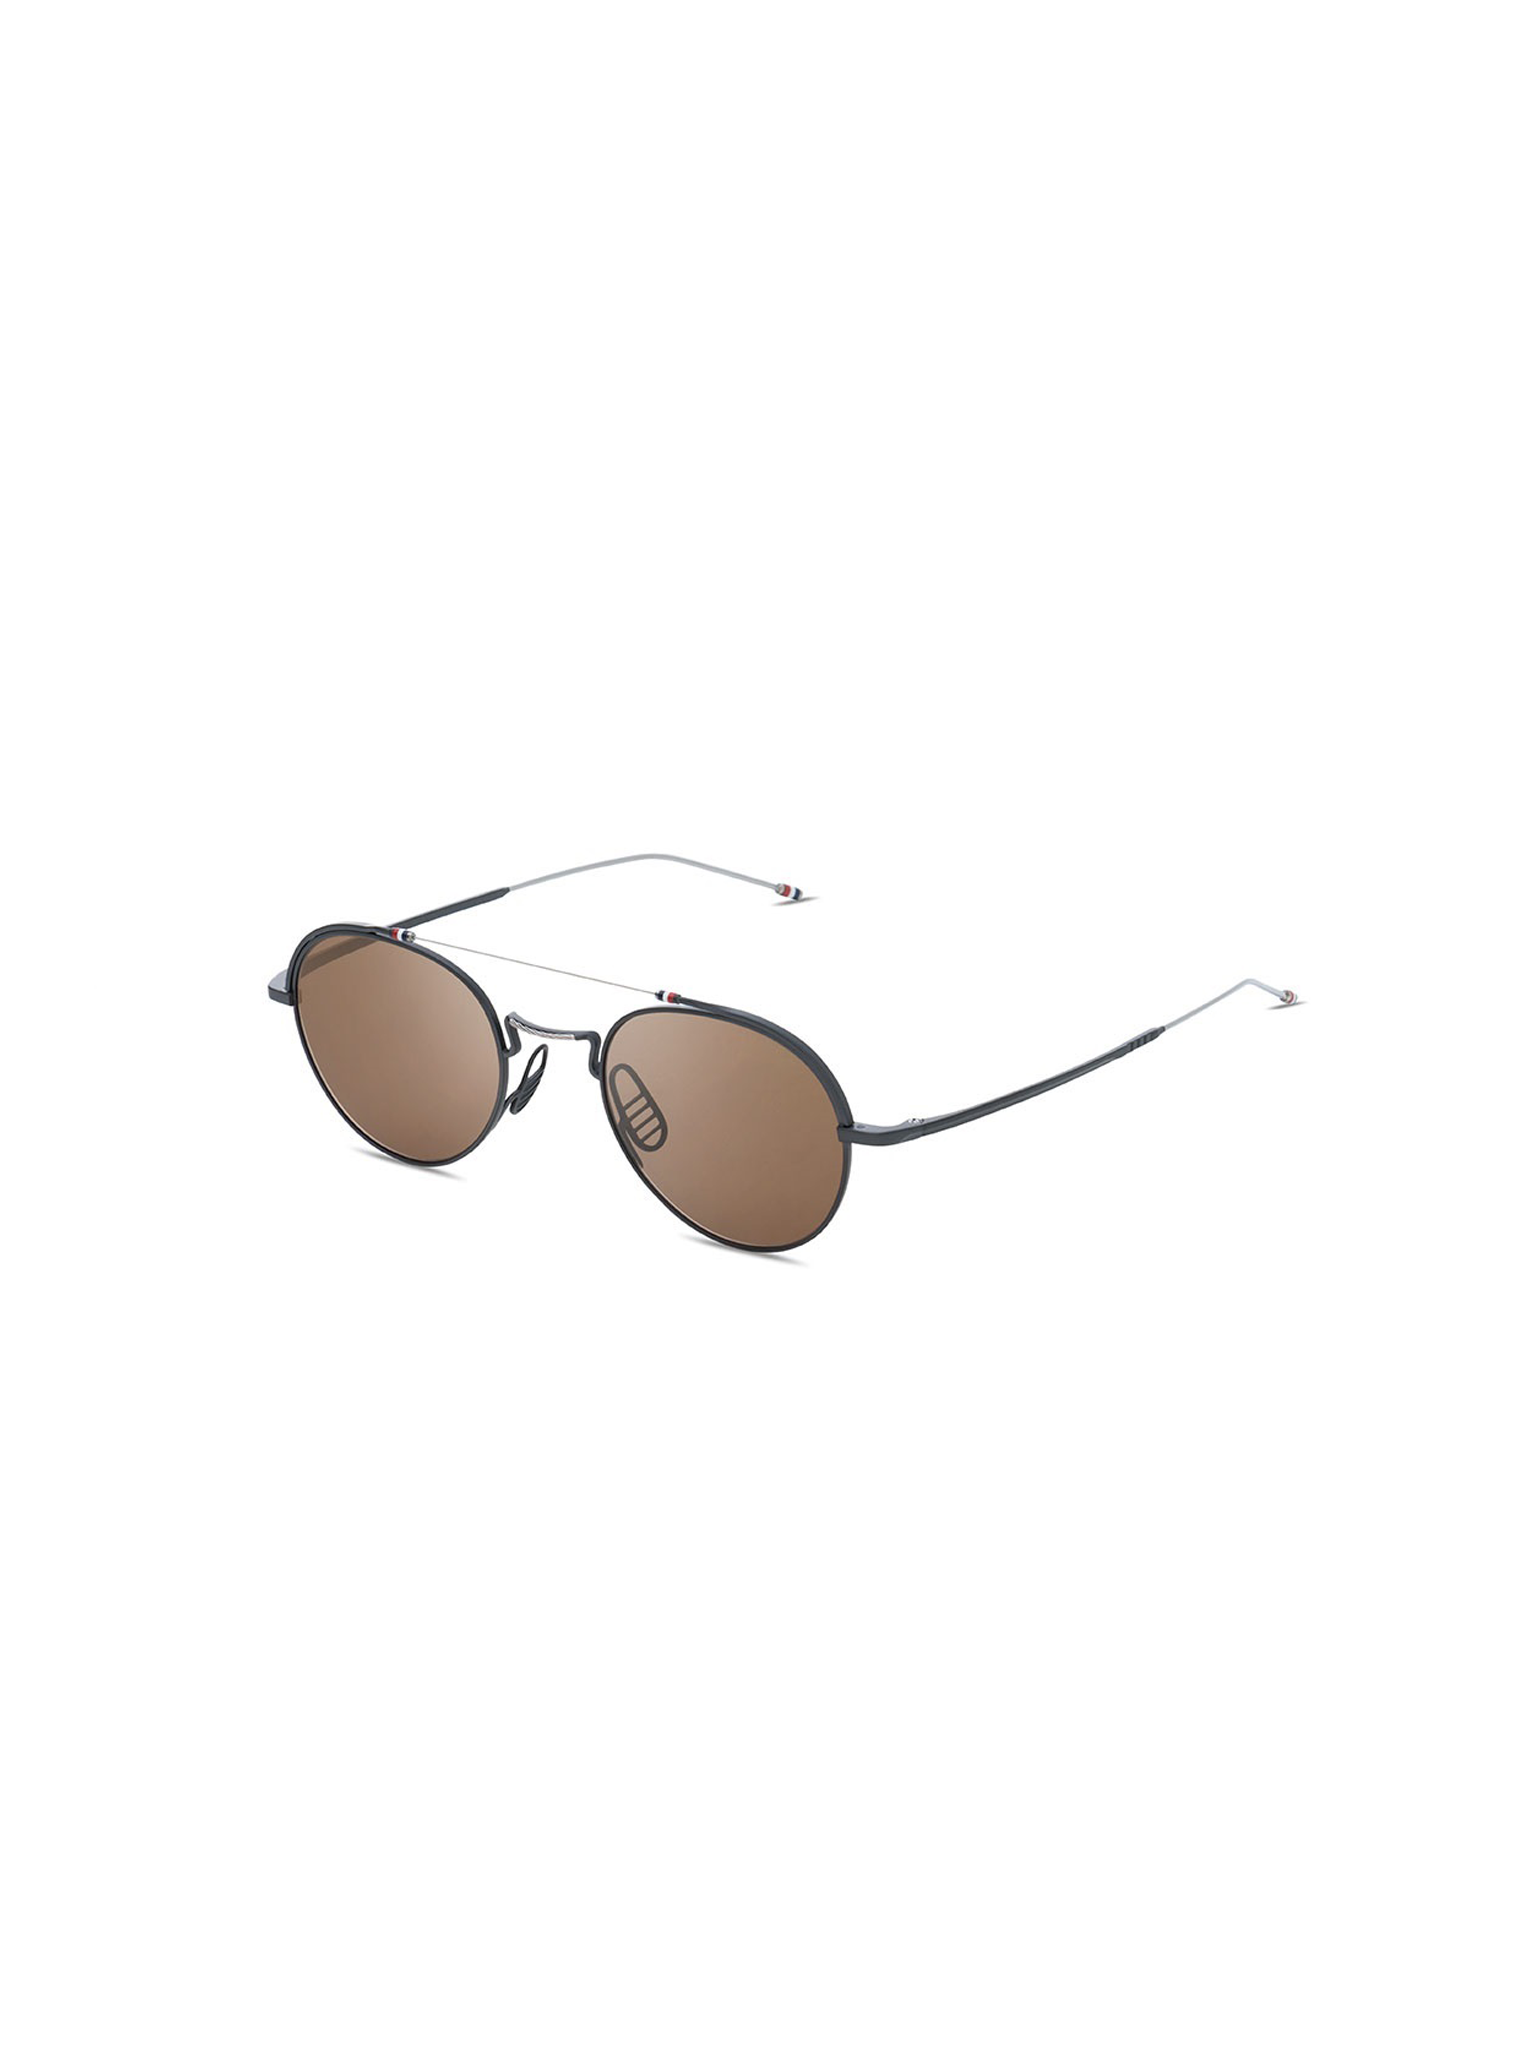 ca95bed7dea0 THOM BROWNE TB-912-49-03-BLK-SLV SUNGLASSES | Free Shipping Offer! - Probus  NYC